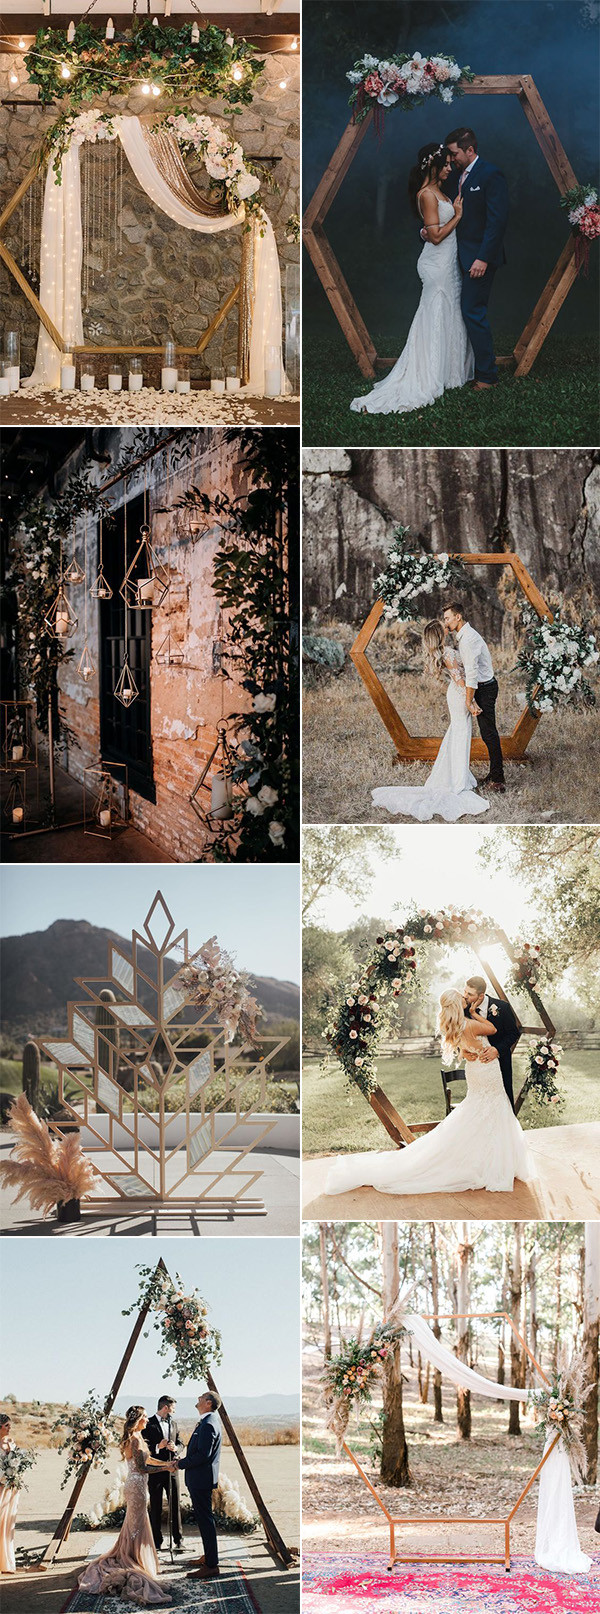 trending geometric wedding ceremony backdrop arch ideas